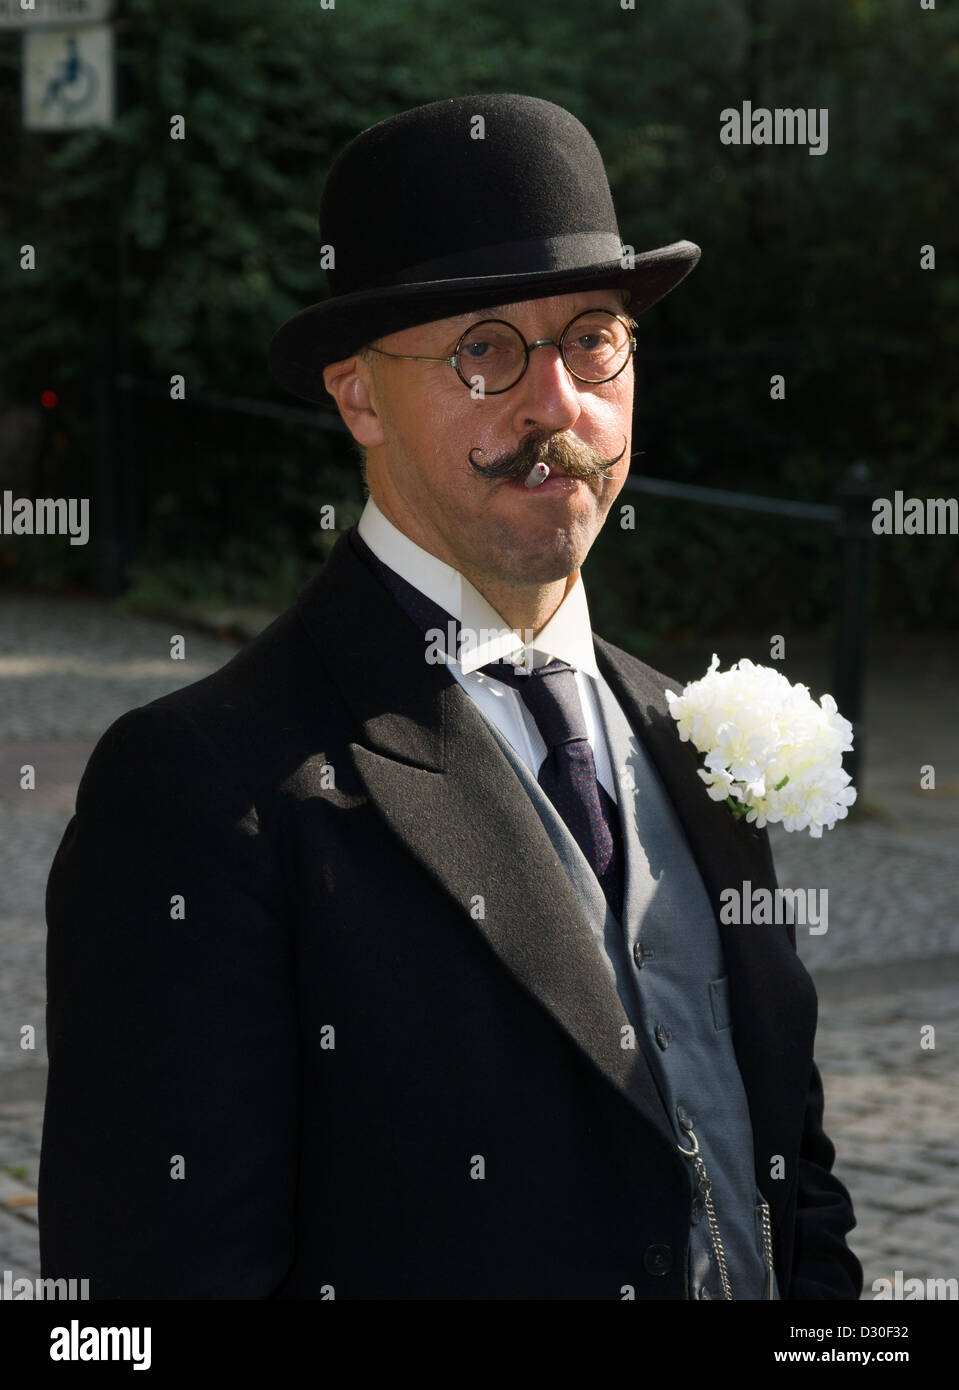 Portrait of a man in a bowler hat. Imperial Holiday (Kaiserfest) - Stock Image